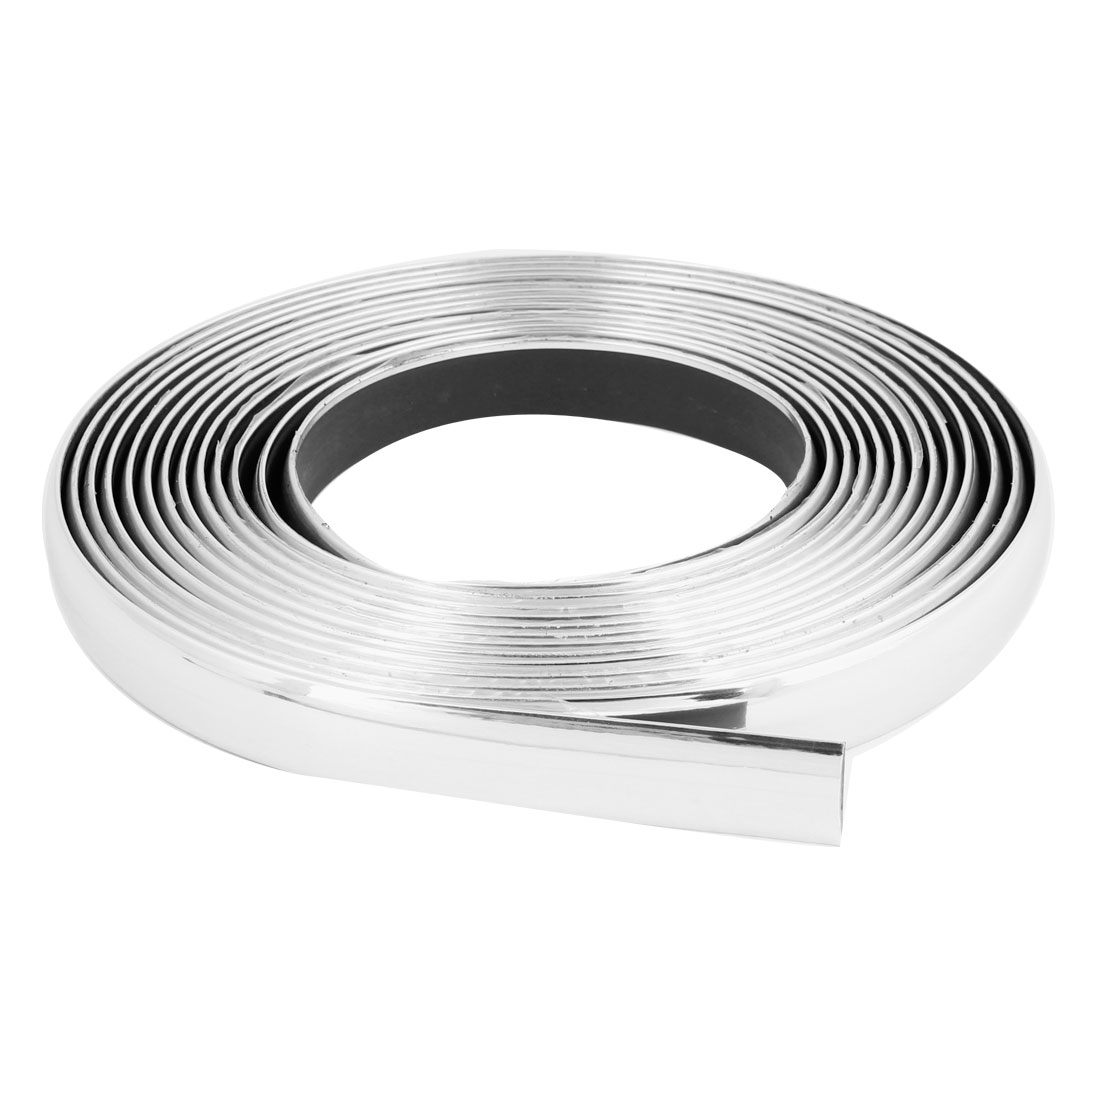 Unique Bargains Car Anti Rust Proof Flexible Silver Tone Moulding Protector Trim Strip 5m x 18mm